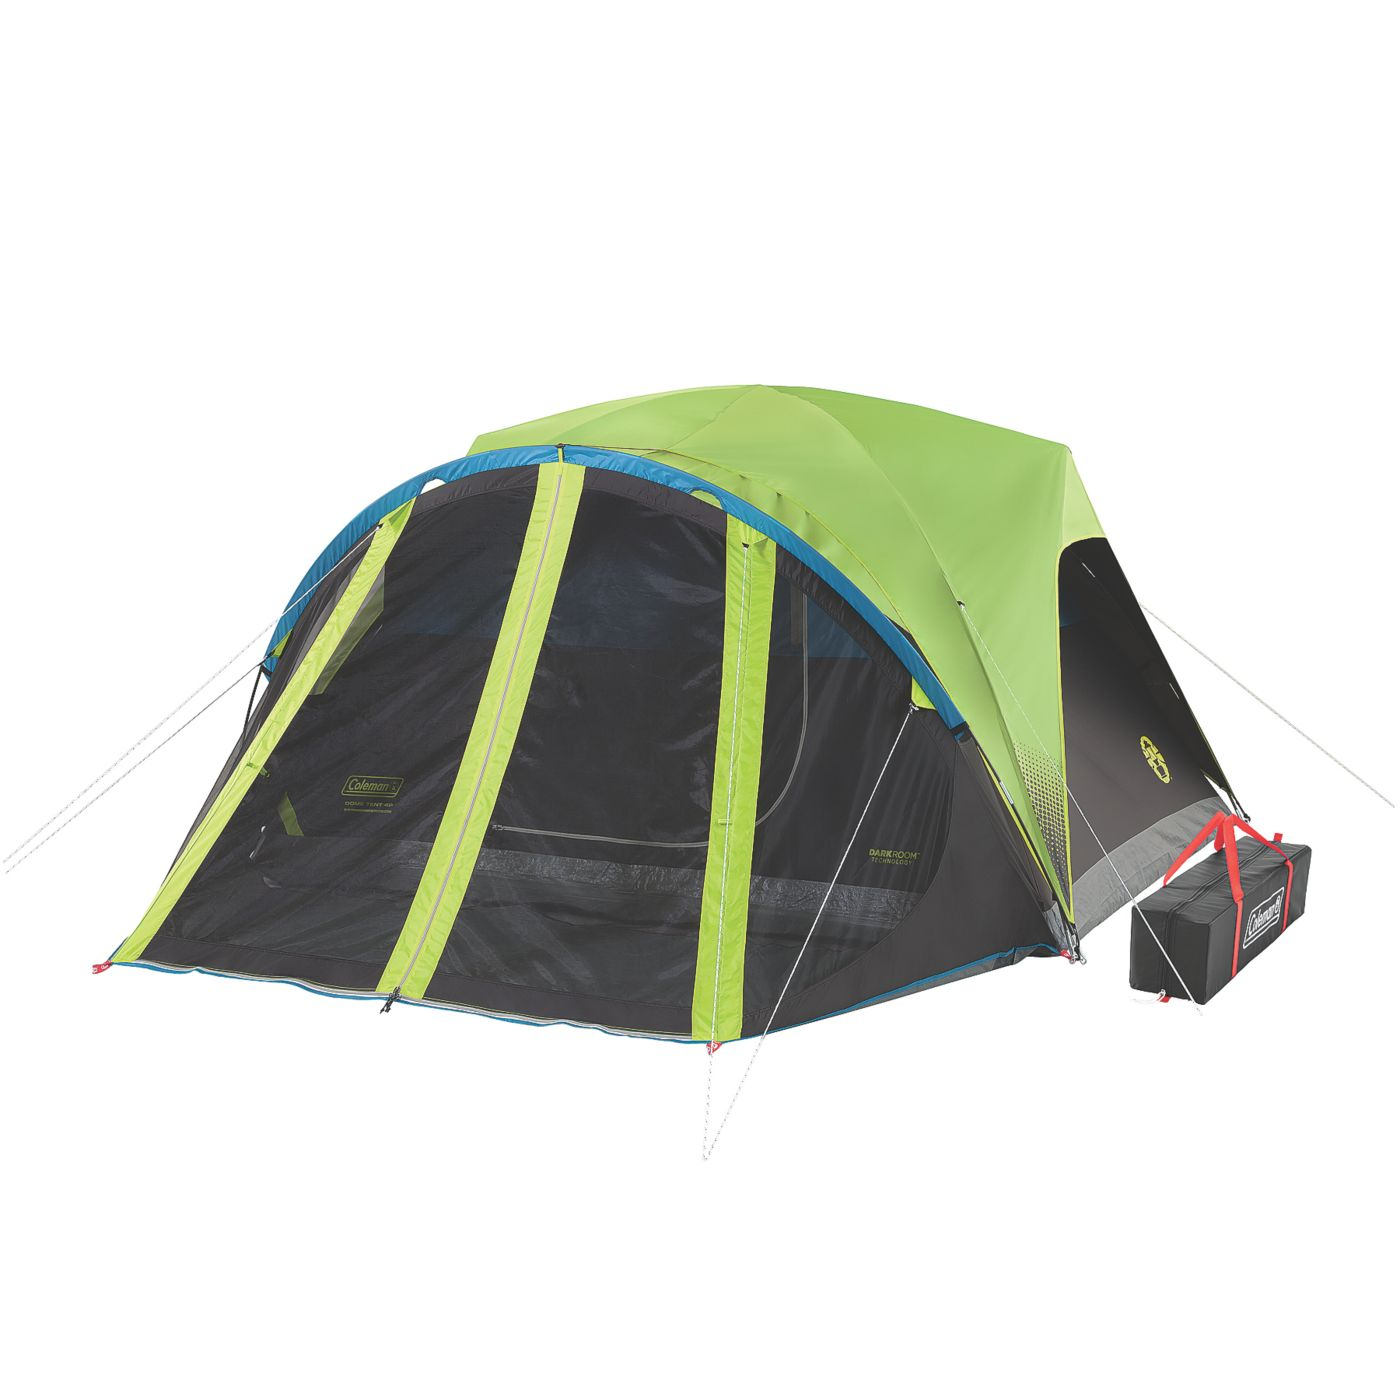 Carlsbad™ Fast Pitch™ 6 Person Dark Room™ Tent  sc 1 st  Coleman & Carlsbad™ Fast Pitch™ 6 Person Dark Room™ Tent - CANADA